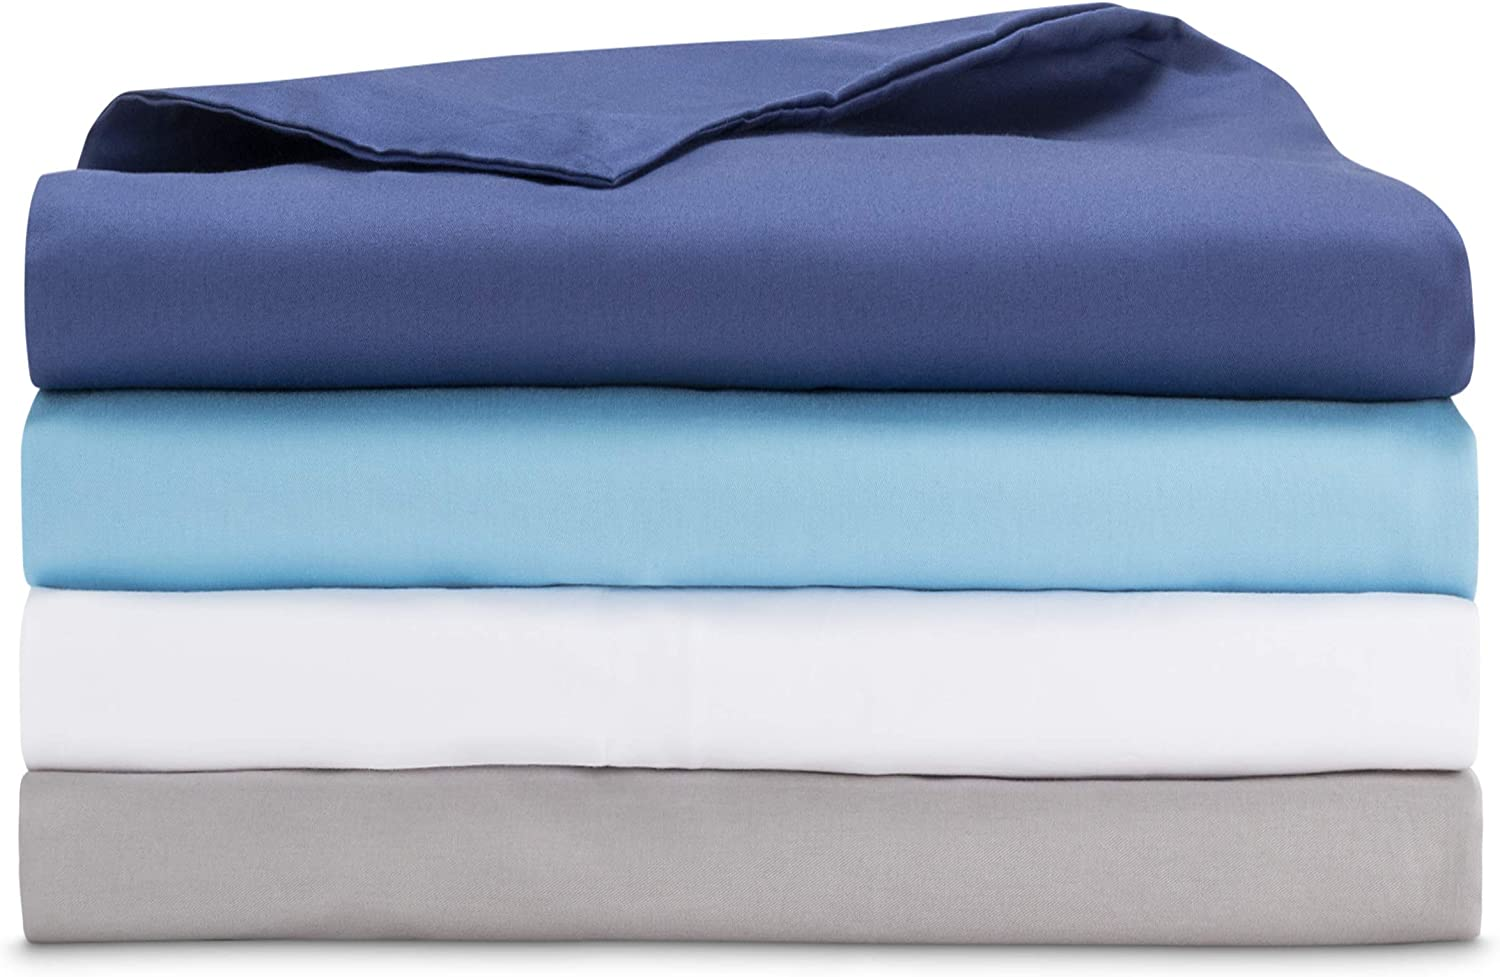 Designed in USA Child Size 100/% Organic Oeko-Tex Cooling Cotton LUNA Removable Duvet Cover for Kids Weighted Blanket Machine Washable /& 8 Ties for Secure Fastening 36x48 Blue Space